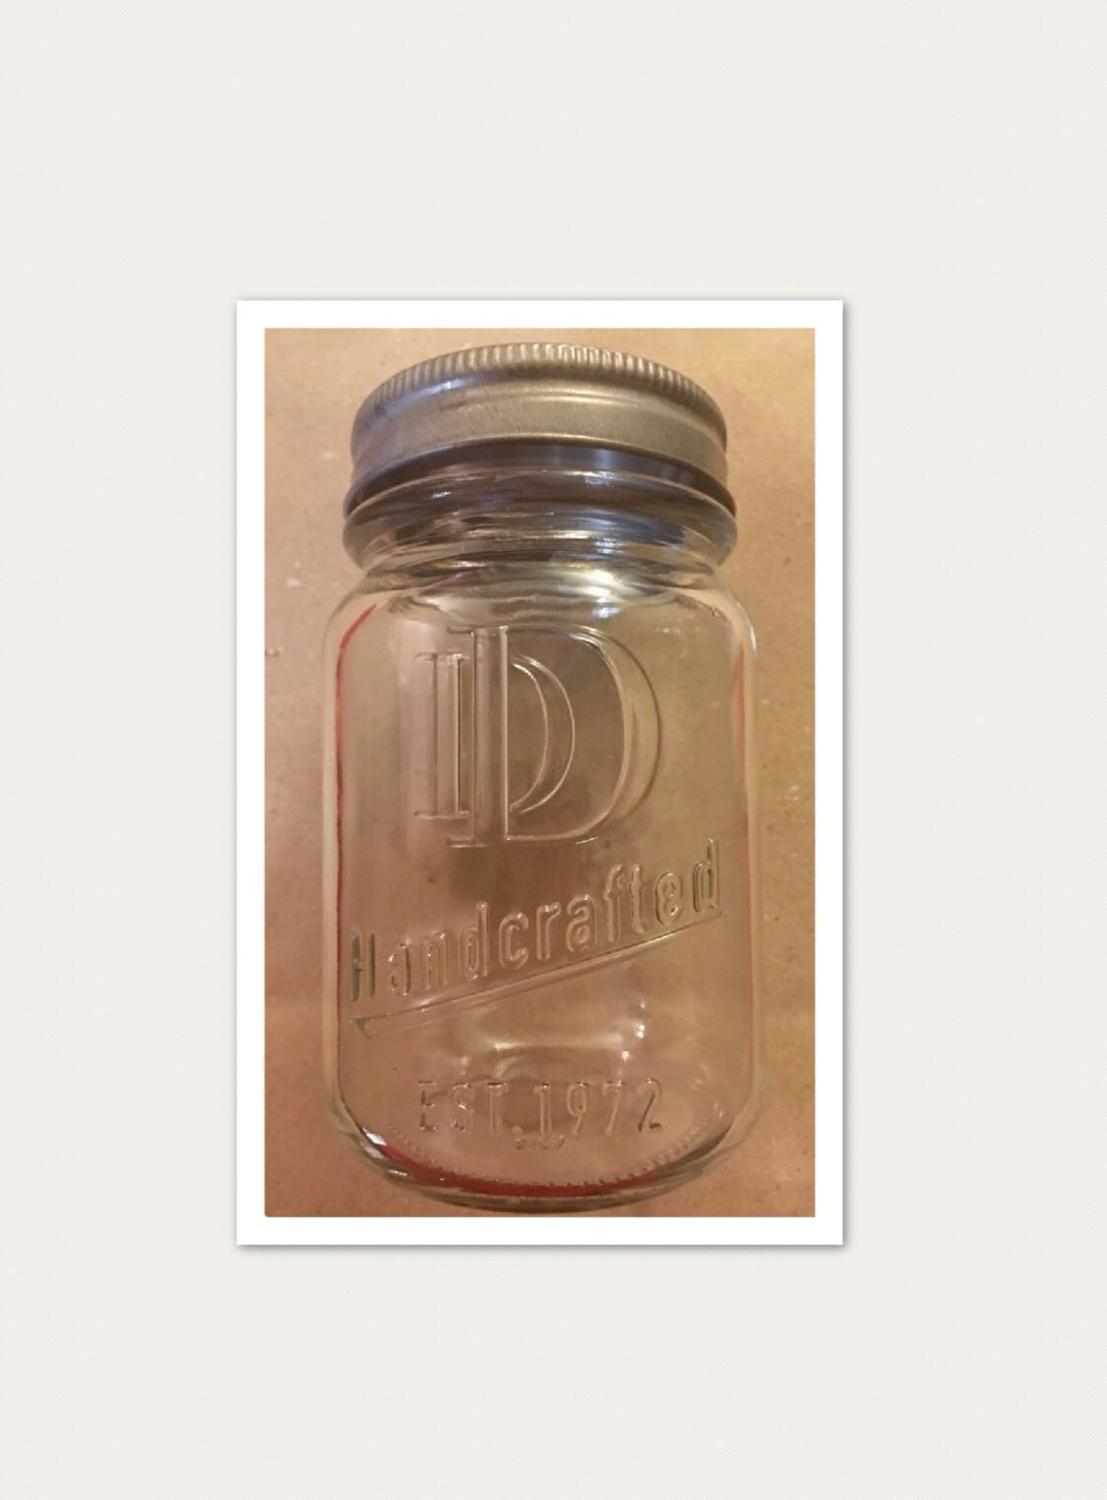 Best New 16 Oz Jars Each With Solid Galvanized Lids For